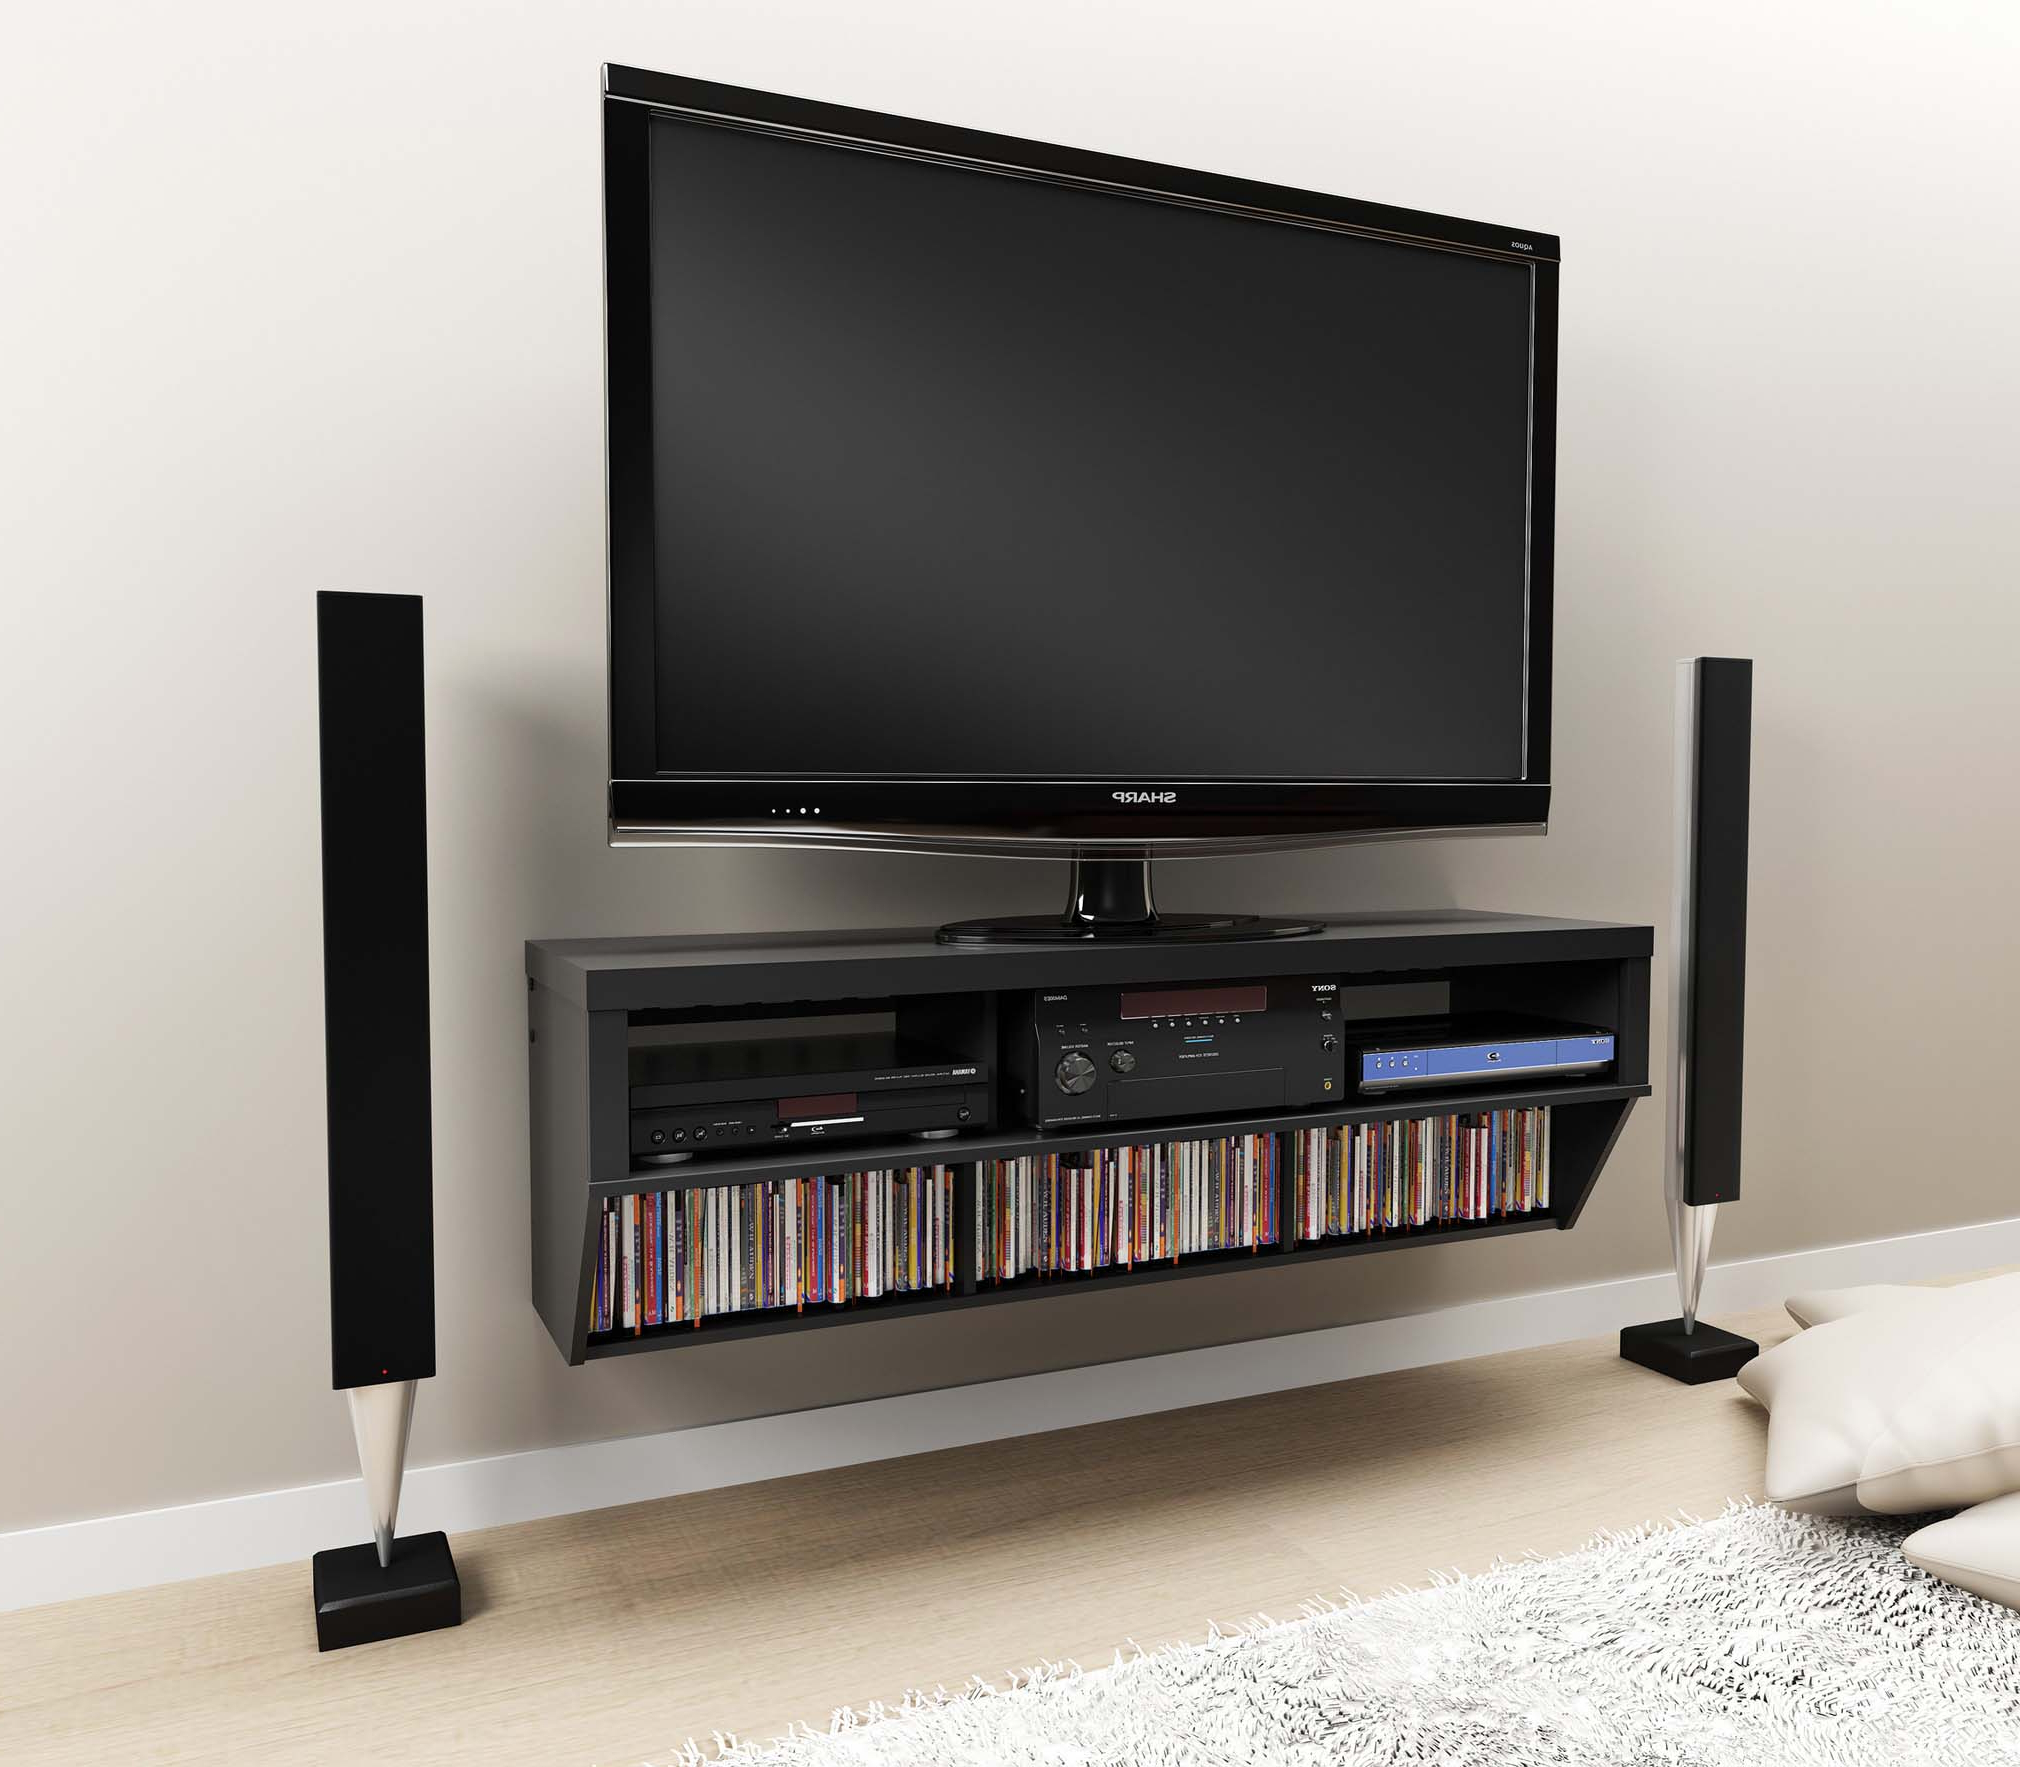 Plasma Tv Holders Throughout Most Up To Date Awesome Plasma Tv Portable Racks – Universal Tv Stand (View 13 of 20)